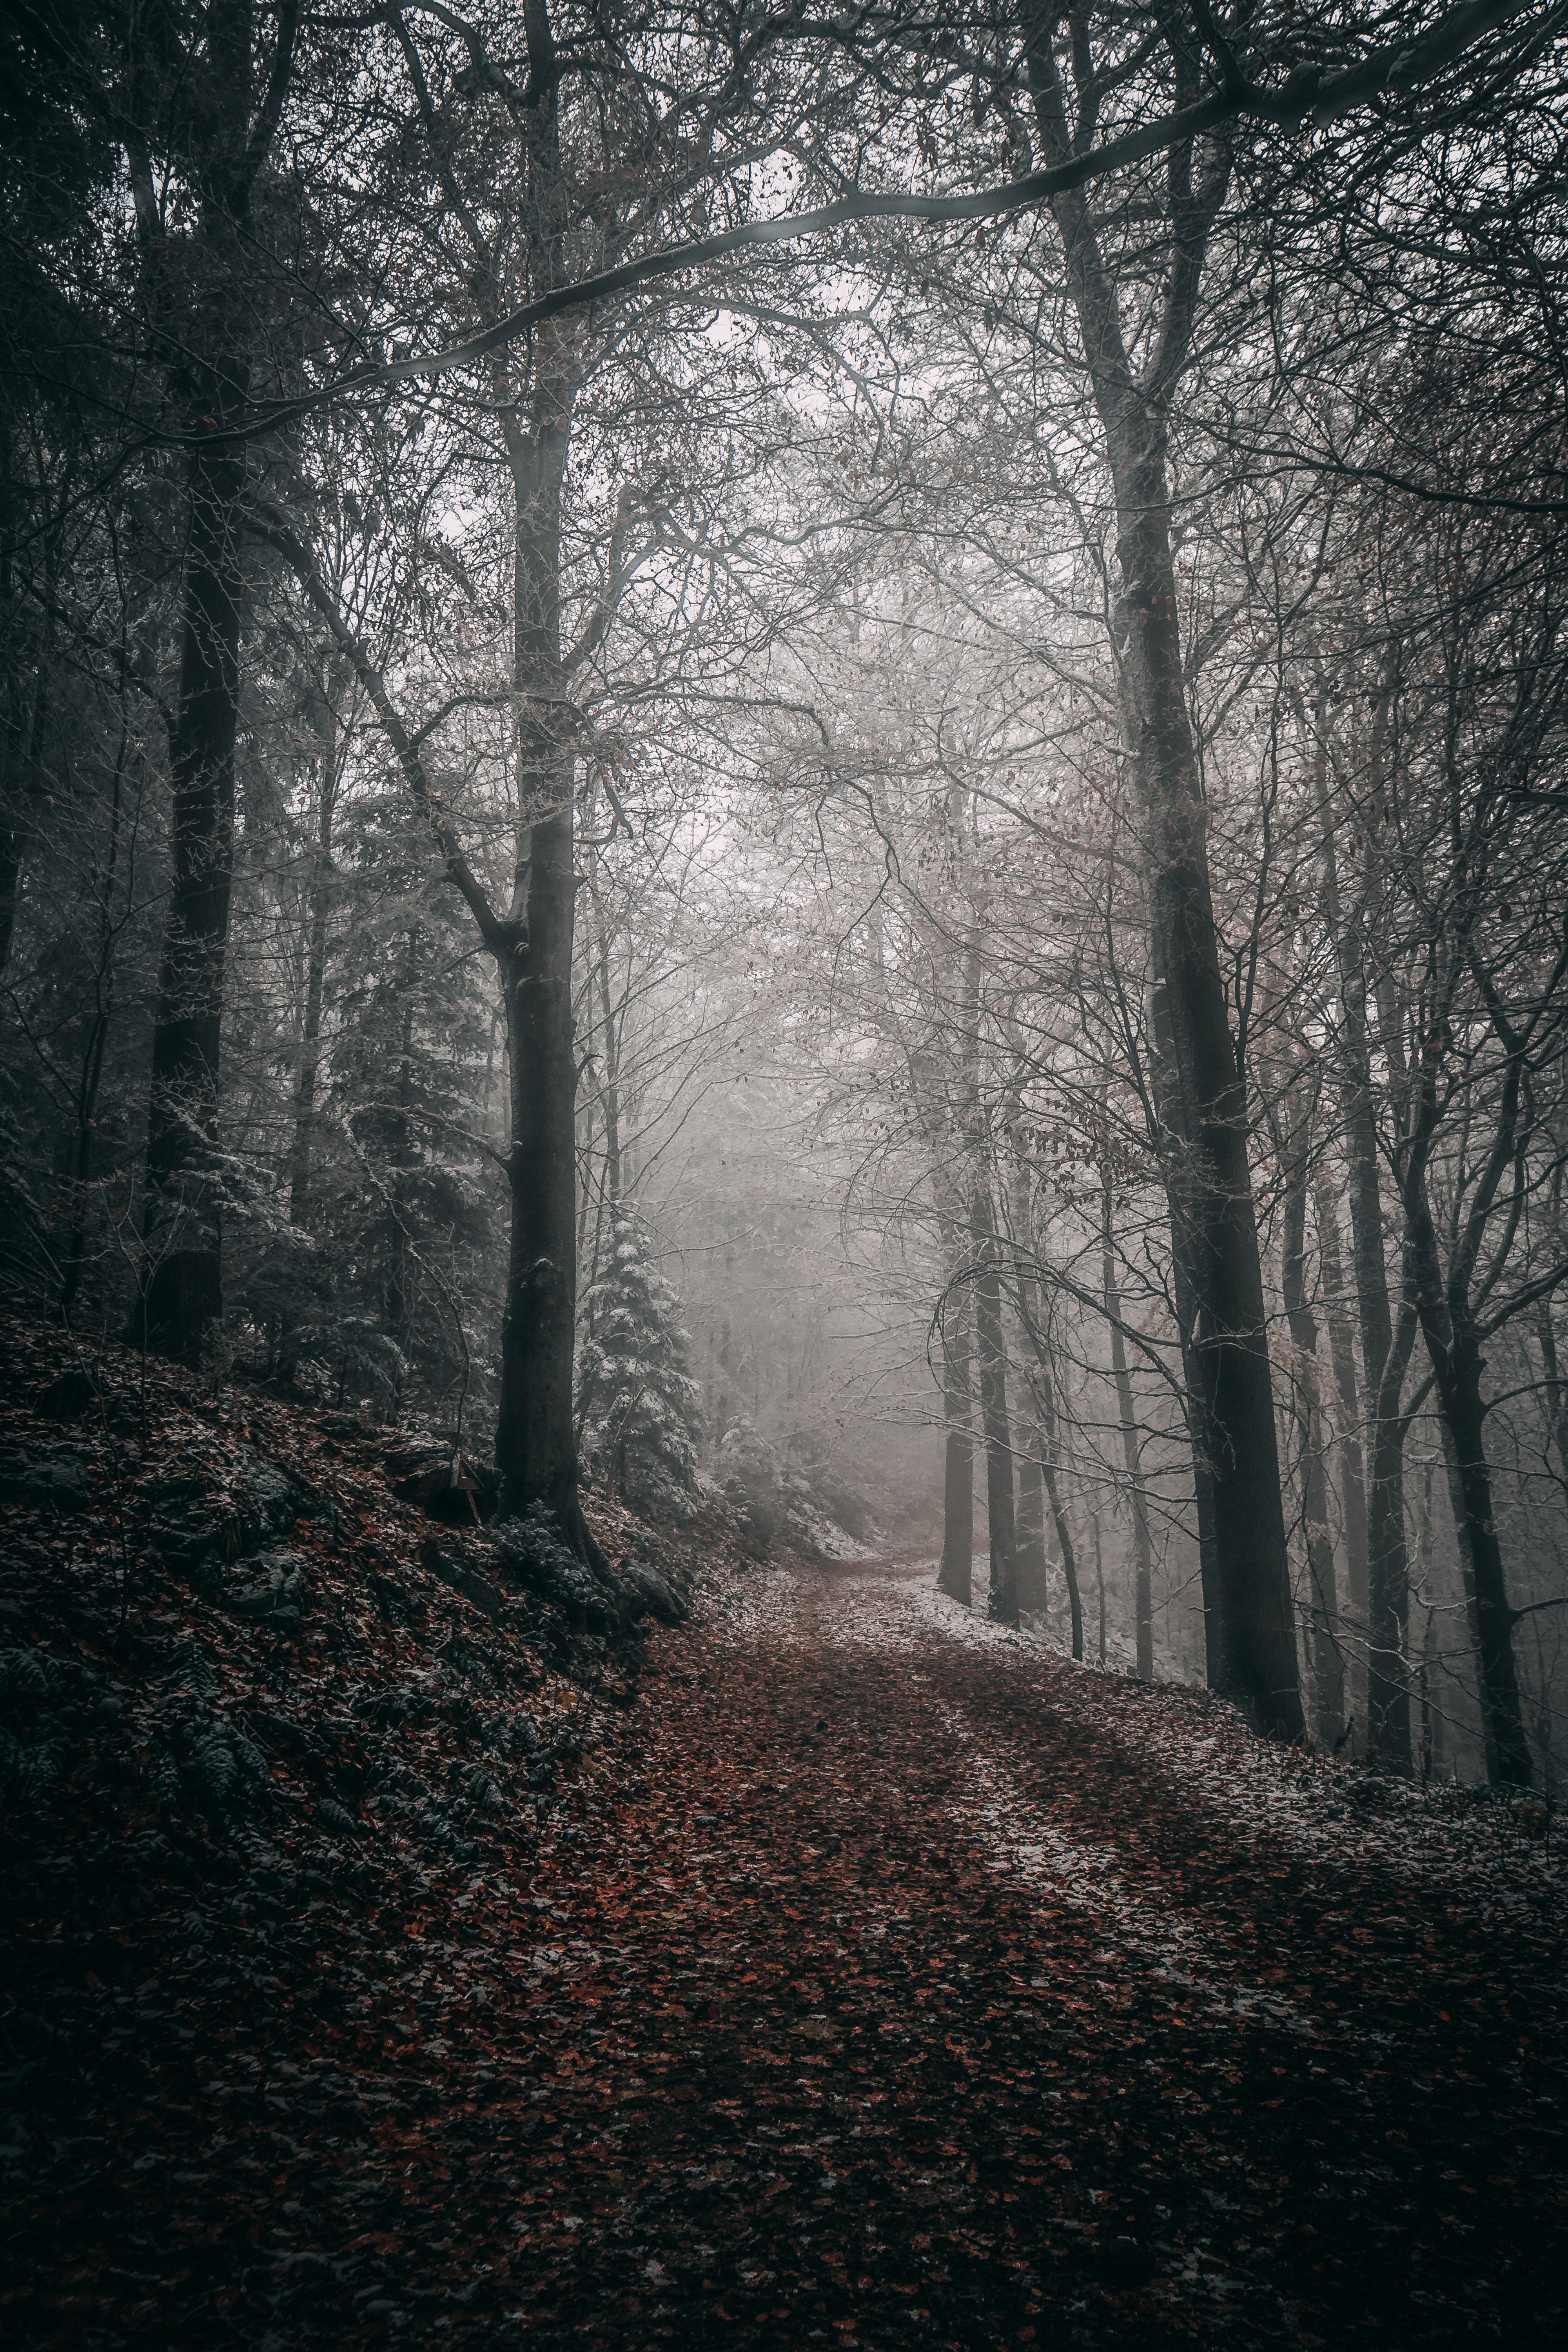 58168 download wallpaper Nature, Trees, Autumn, Forest, Fog, Path, Foliage screensavers and pictures for free